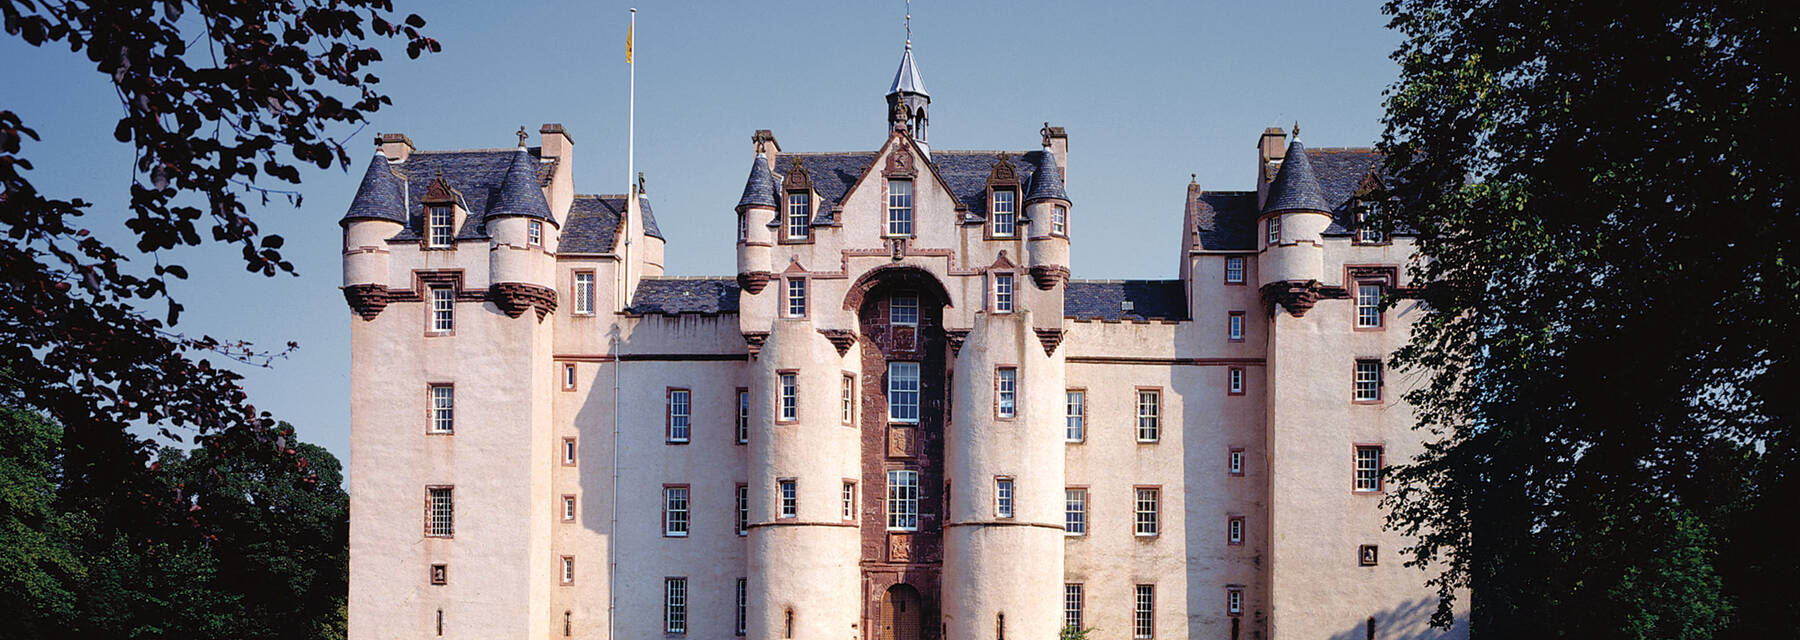 A view of the front of Fyvie Castle, showing its numerous towers, seen from the lawn. Large trees frame the shot.